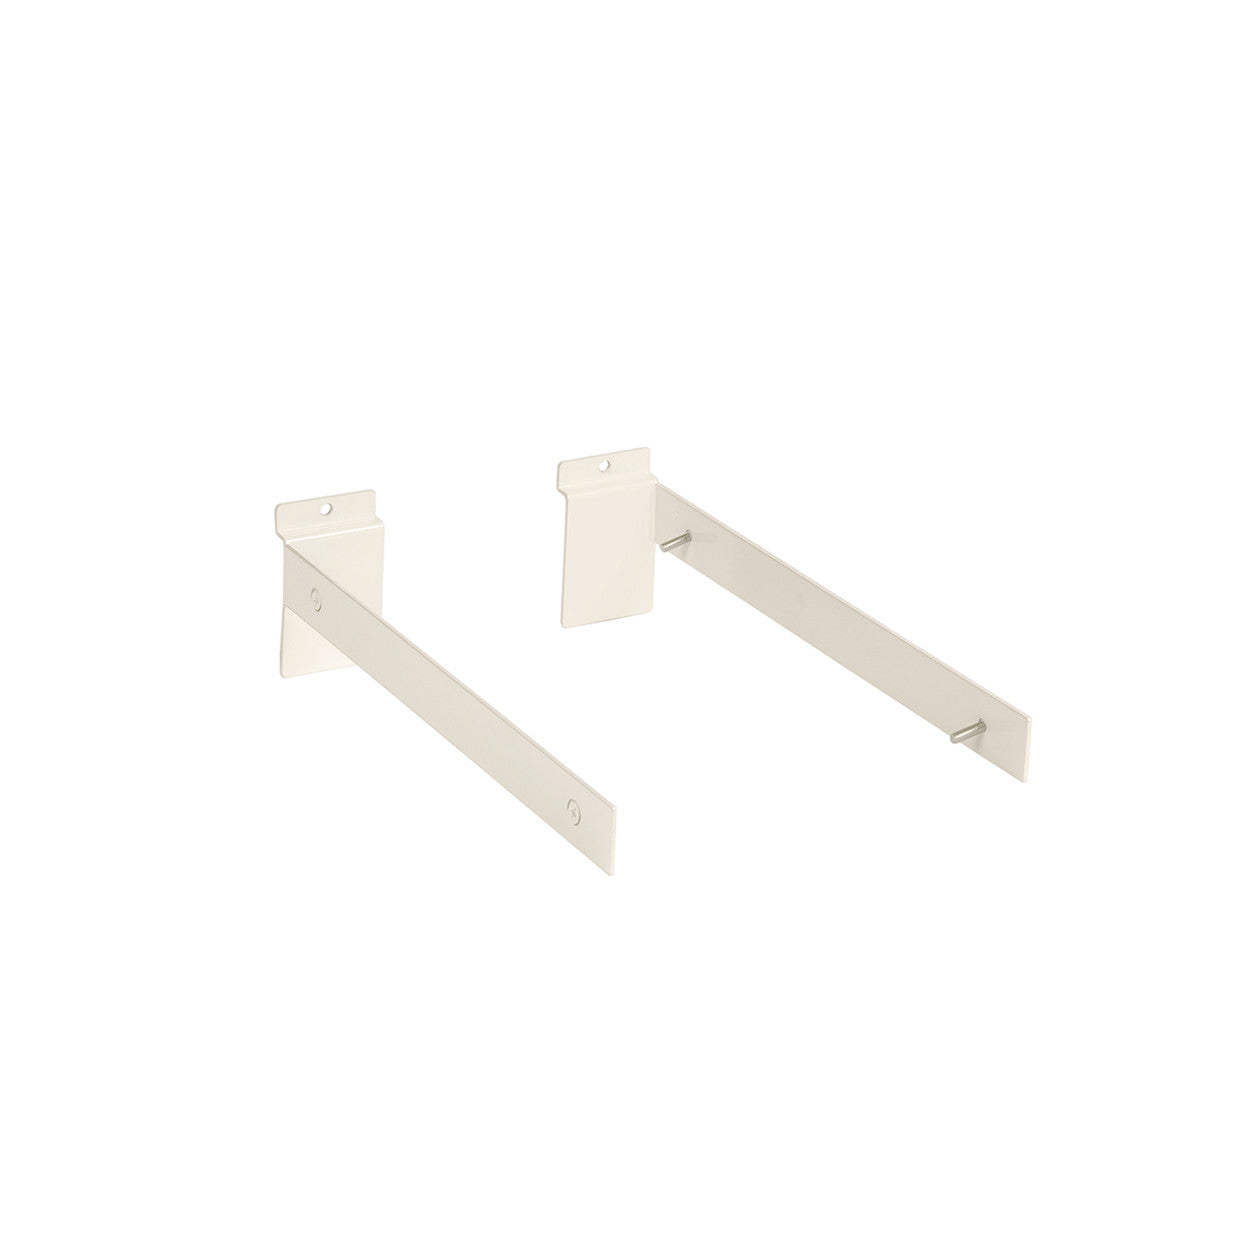 Slatwall bracket set for 30 mm x 300 mm D shelf  300 D x 30 H x 2.5 mm Thick S1673WH